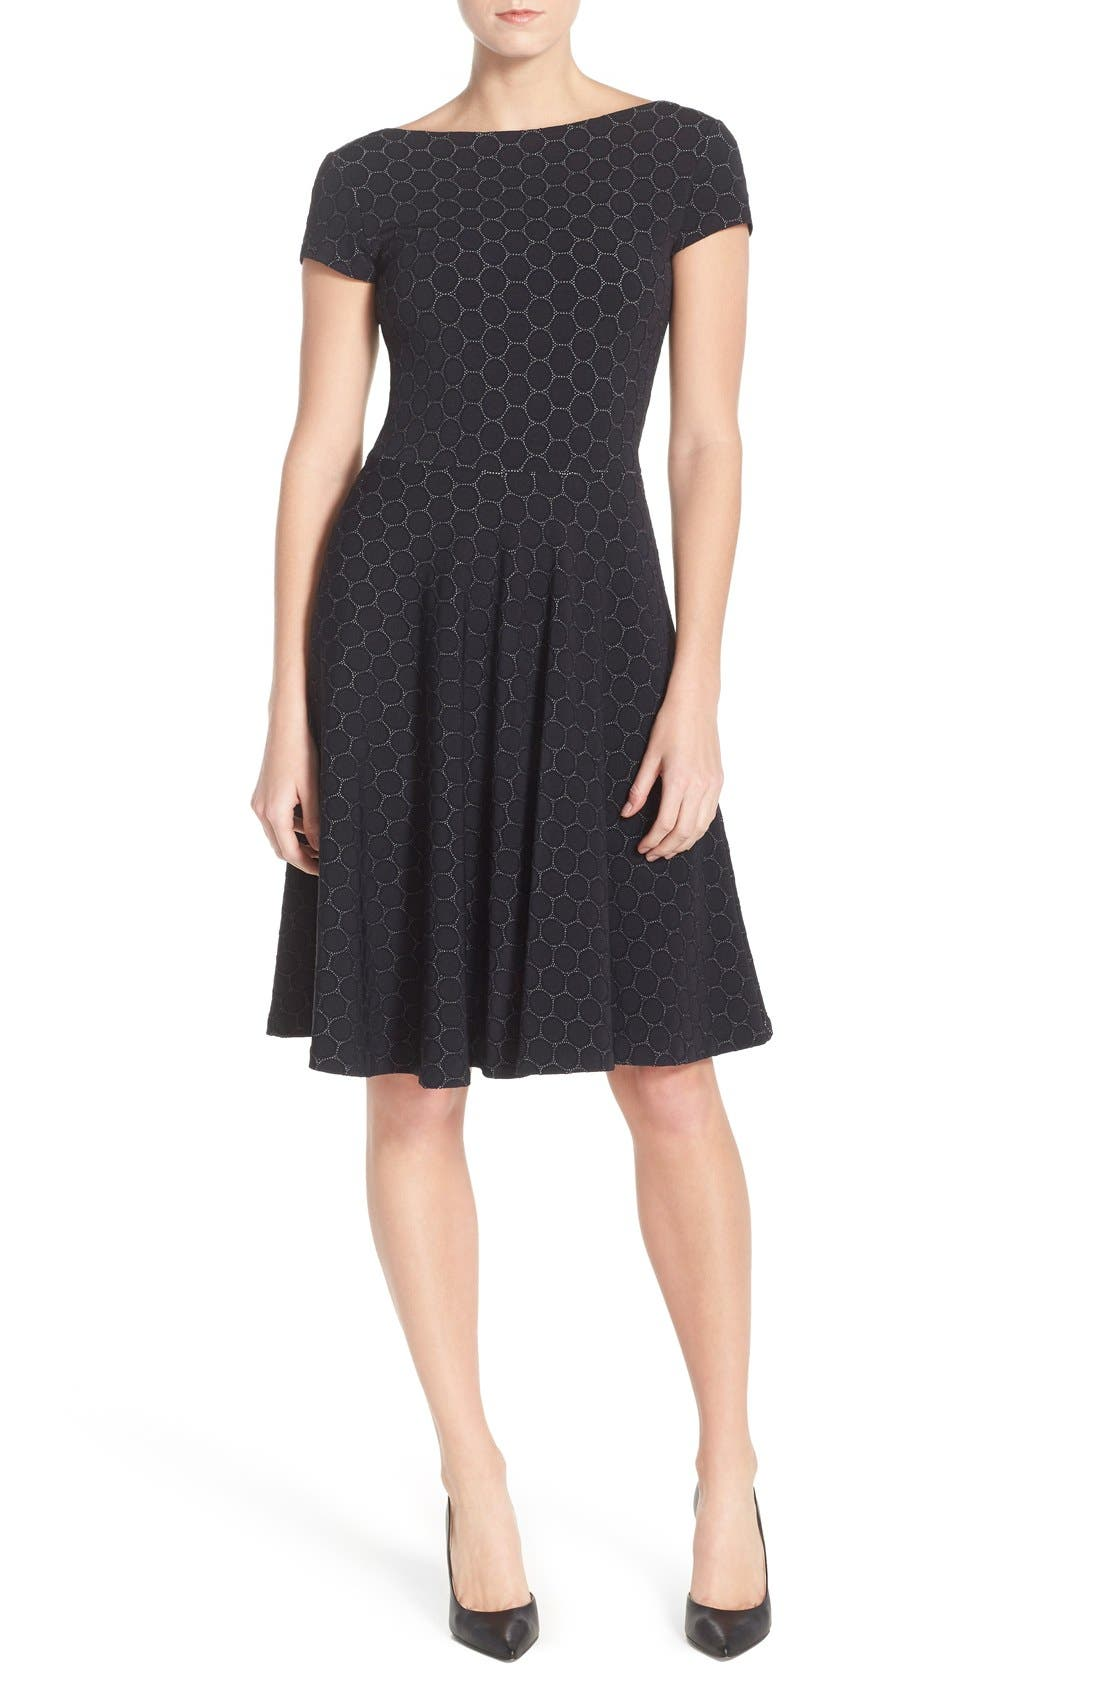 Leota 'Circle' Jacquard Woven Jersey Dress